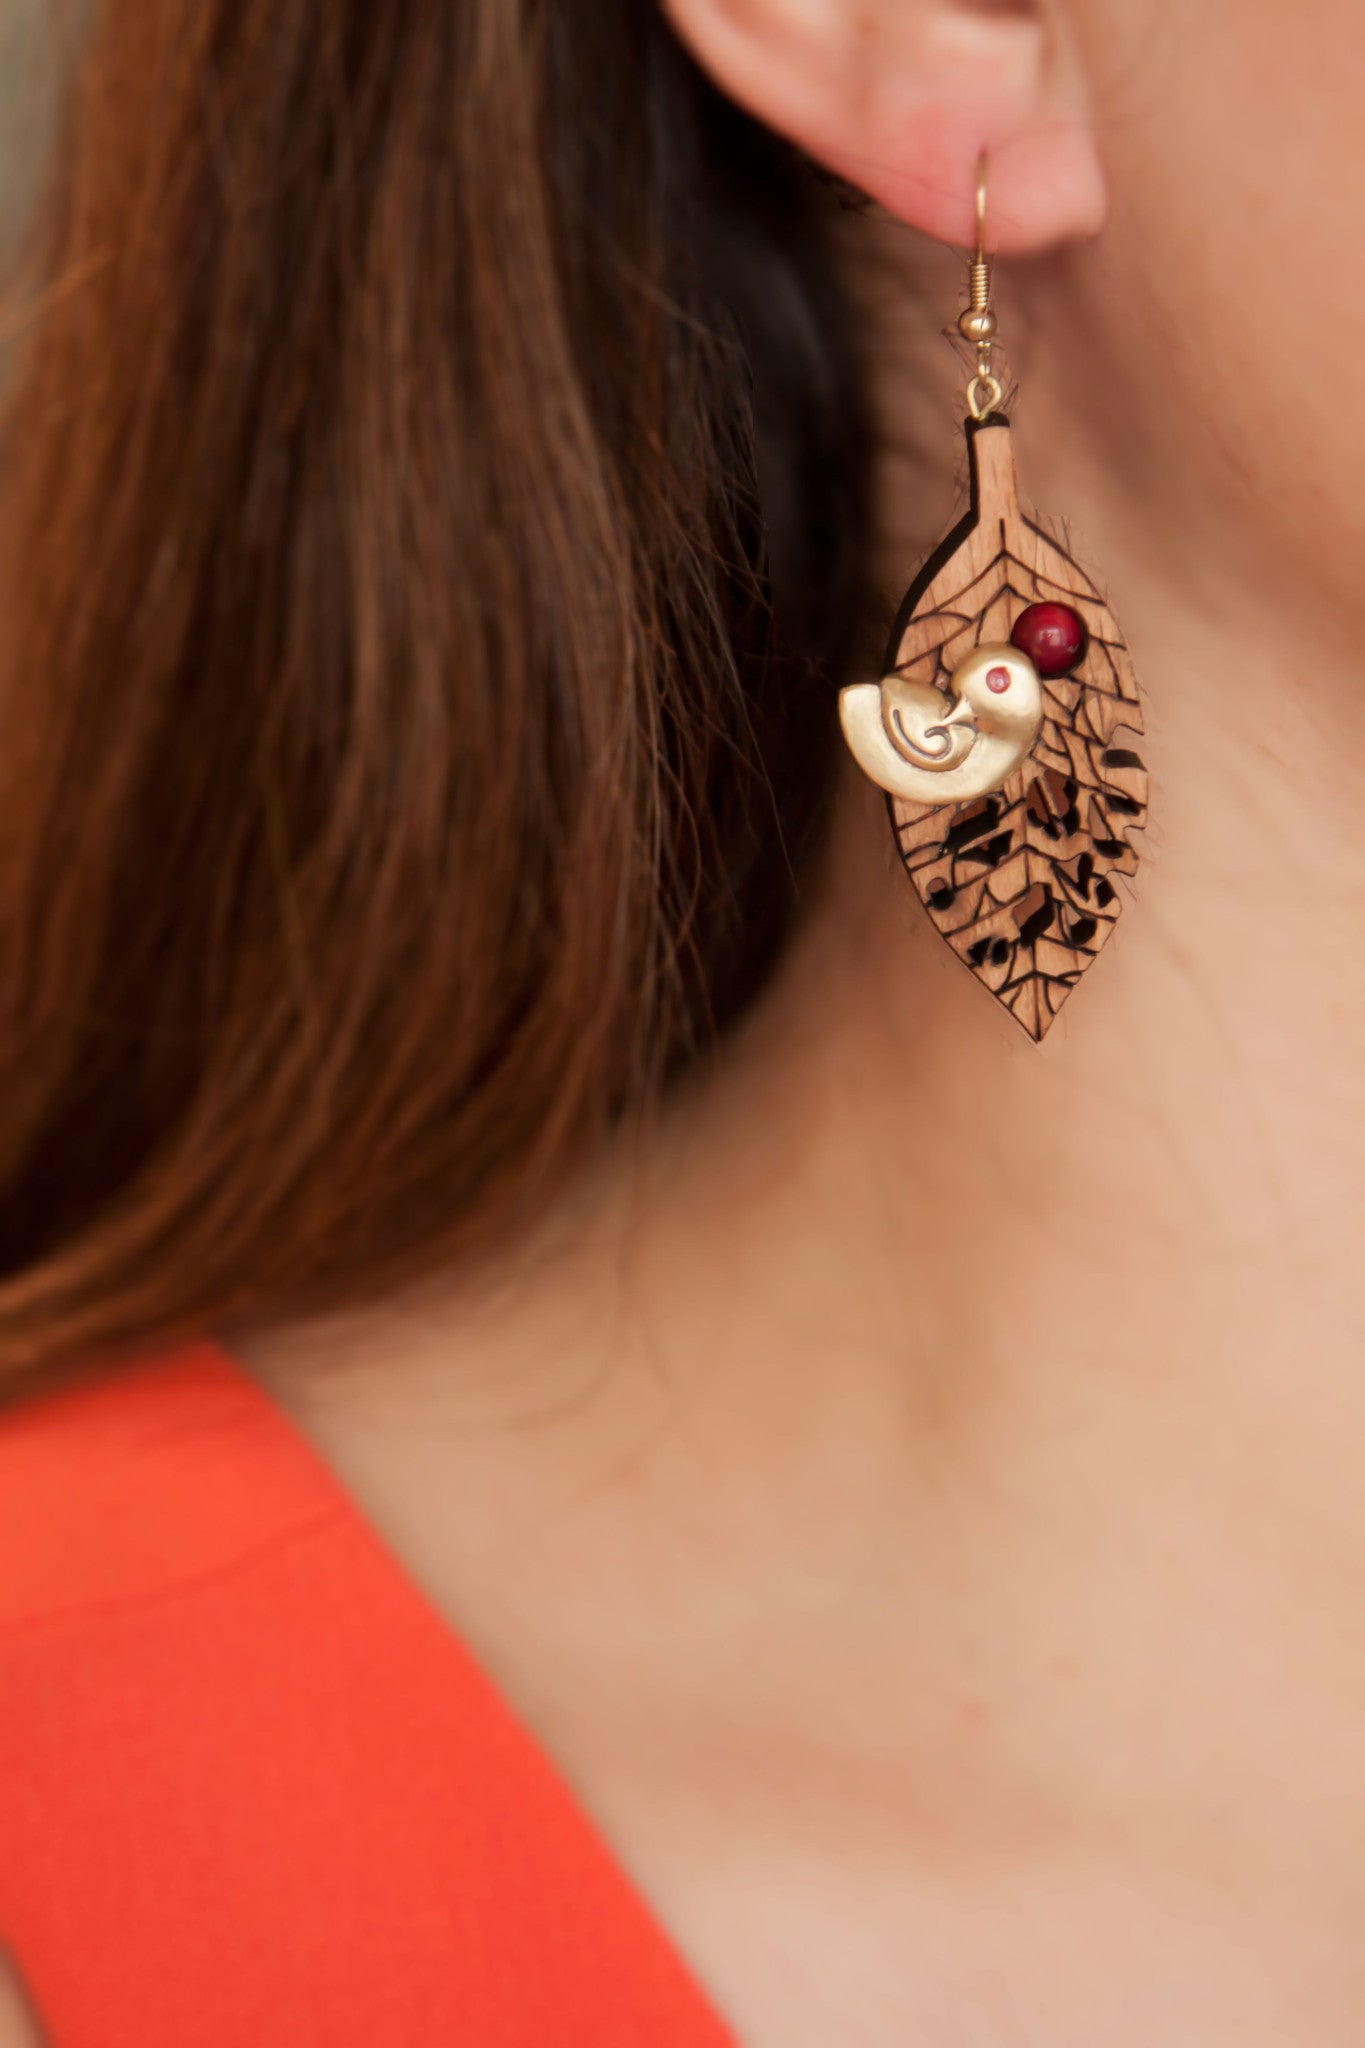 Wooden Earring with a small metal bird - artsy artworks